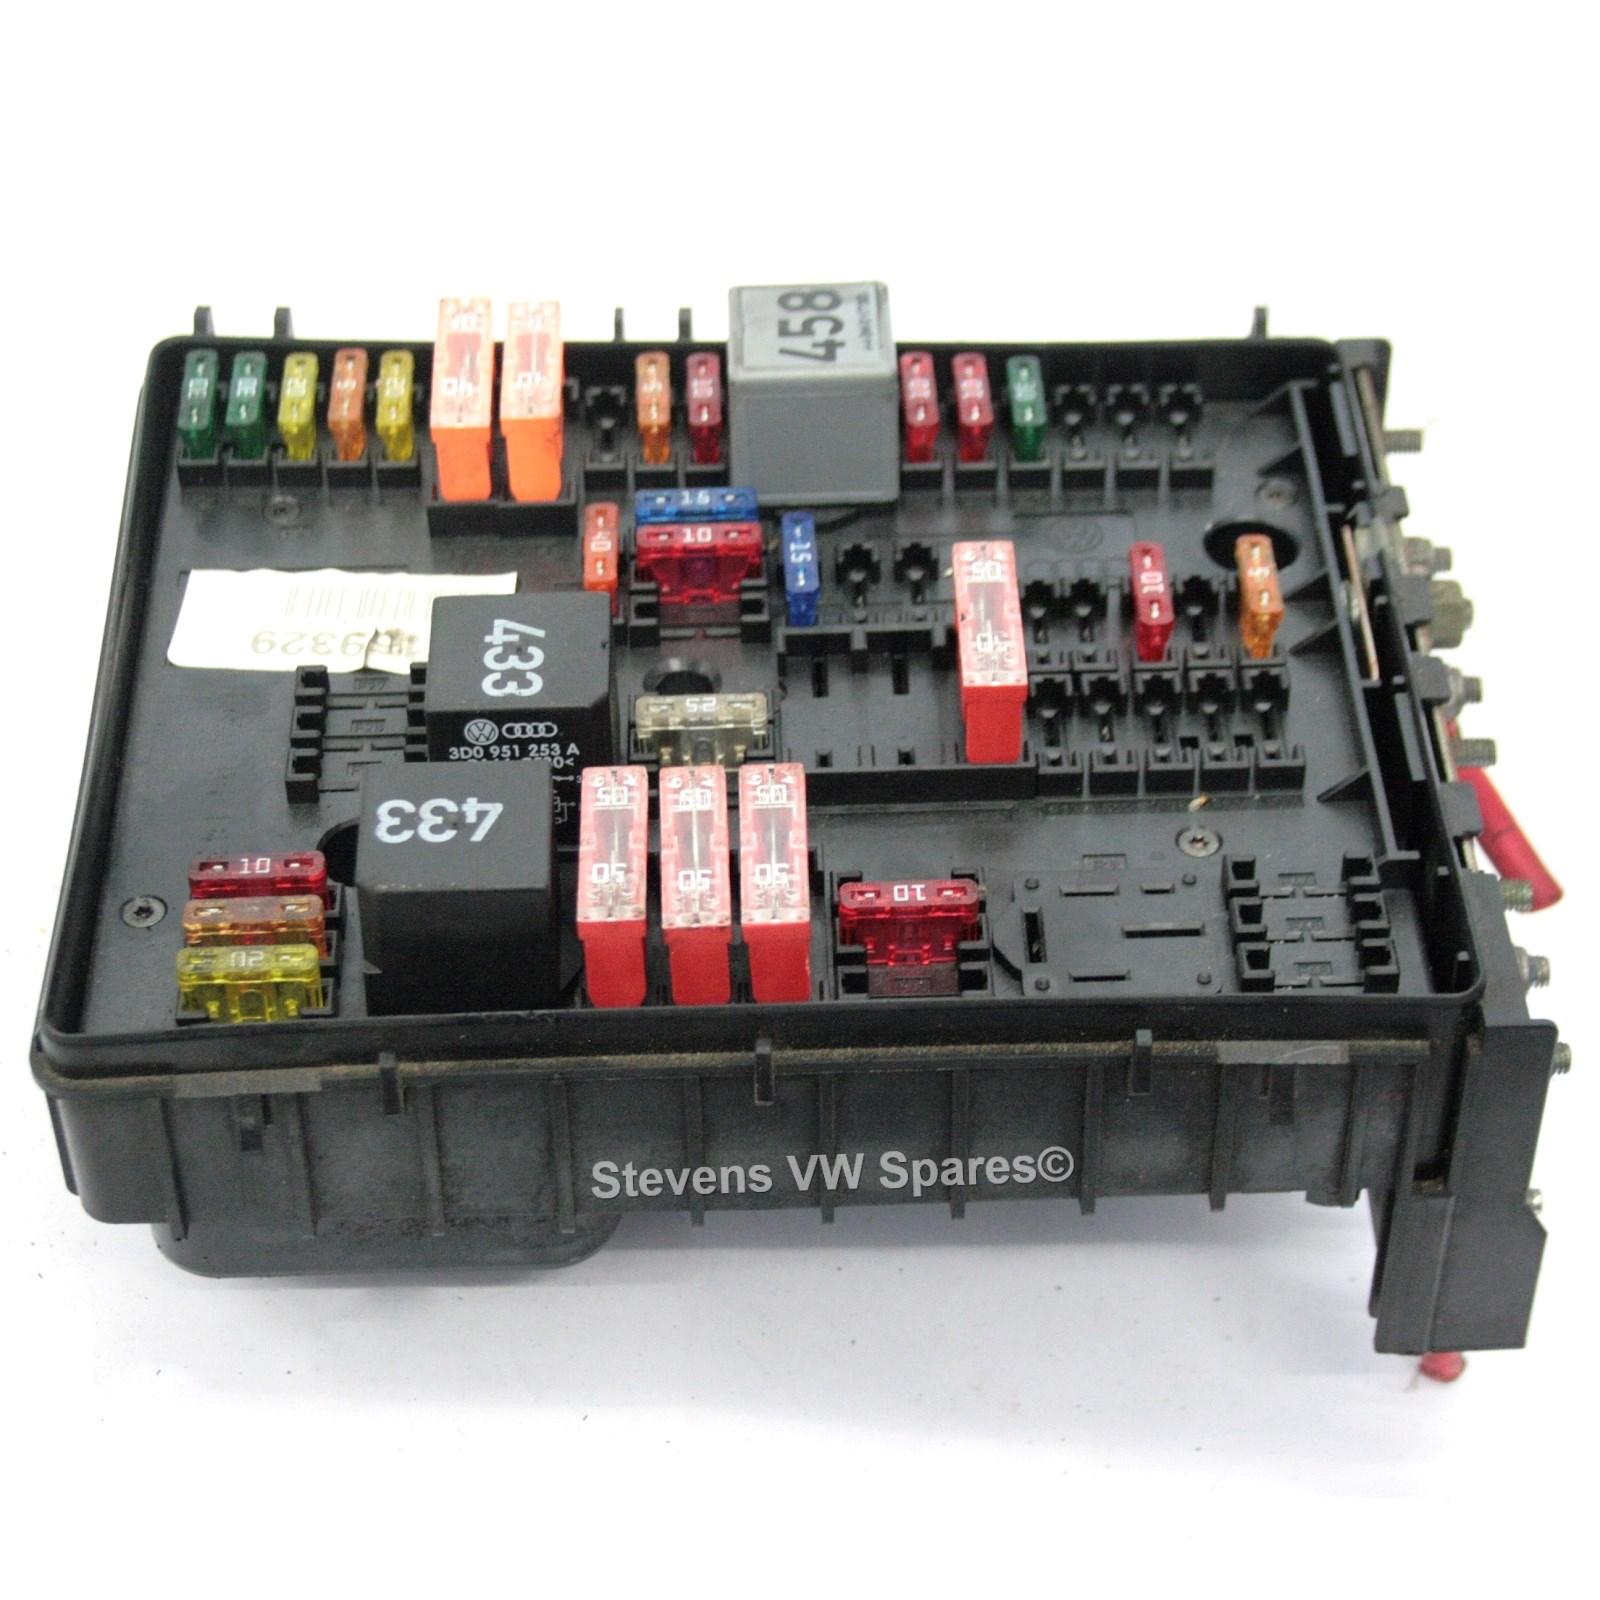 Components Of Fuse Box : Used genuine vw golf engine bay fuse box terminal k